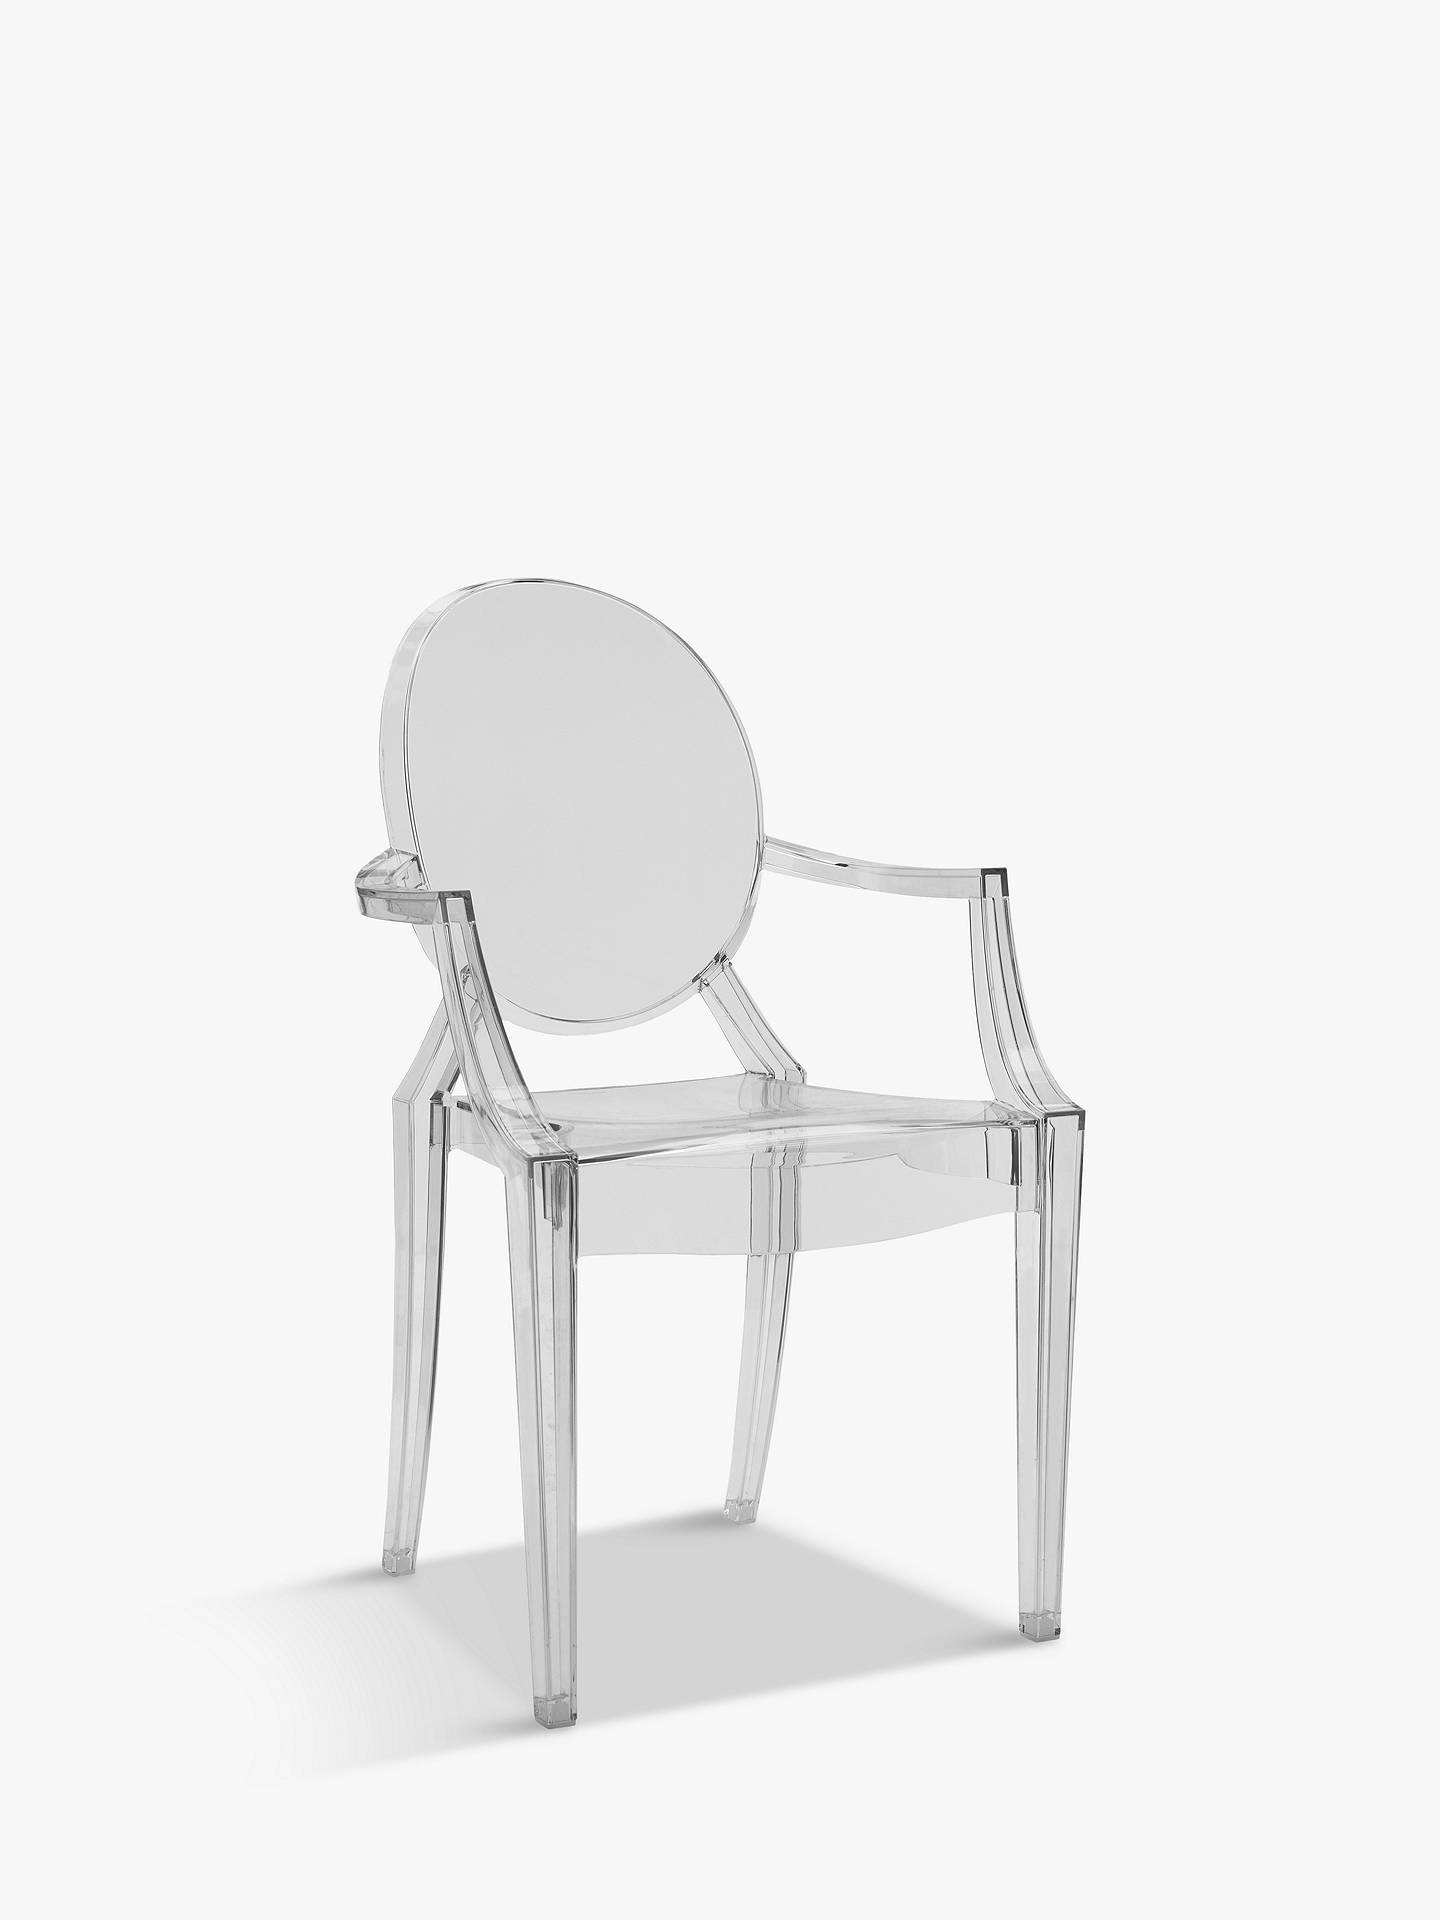 Merveilleux BuyPhilippe Starck For Kartell Louis Ghost Chair, Crystal Online At  Johnlewis.com ...